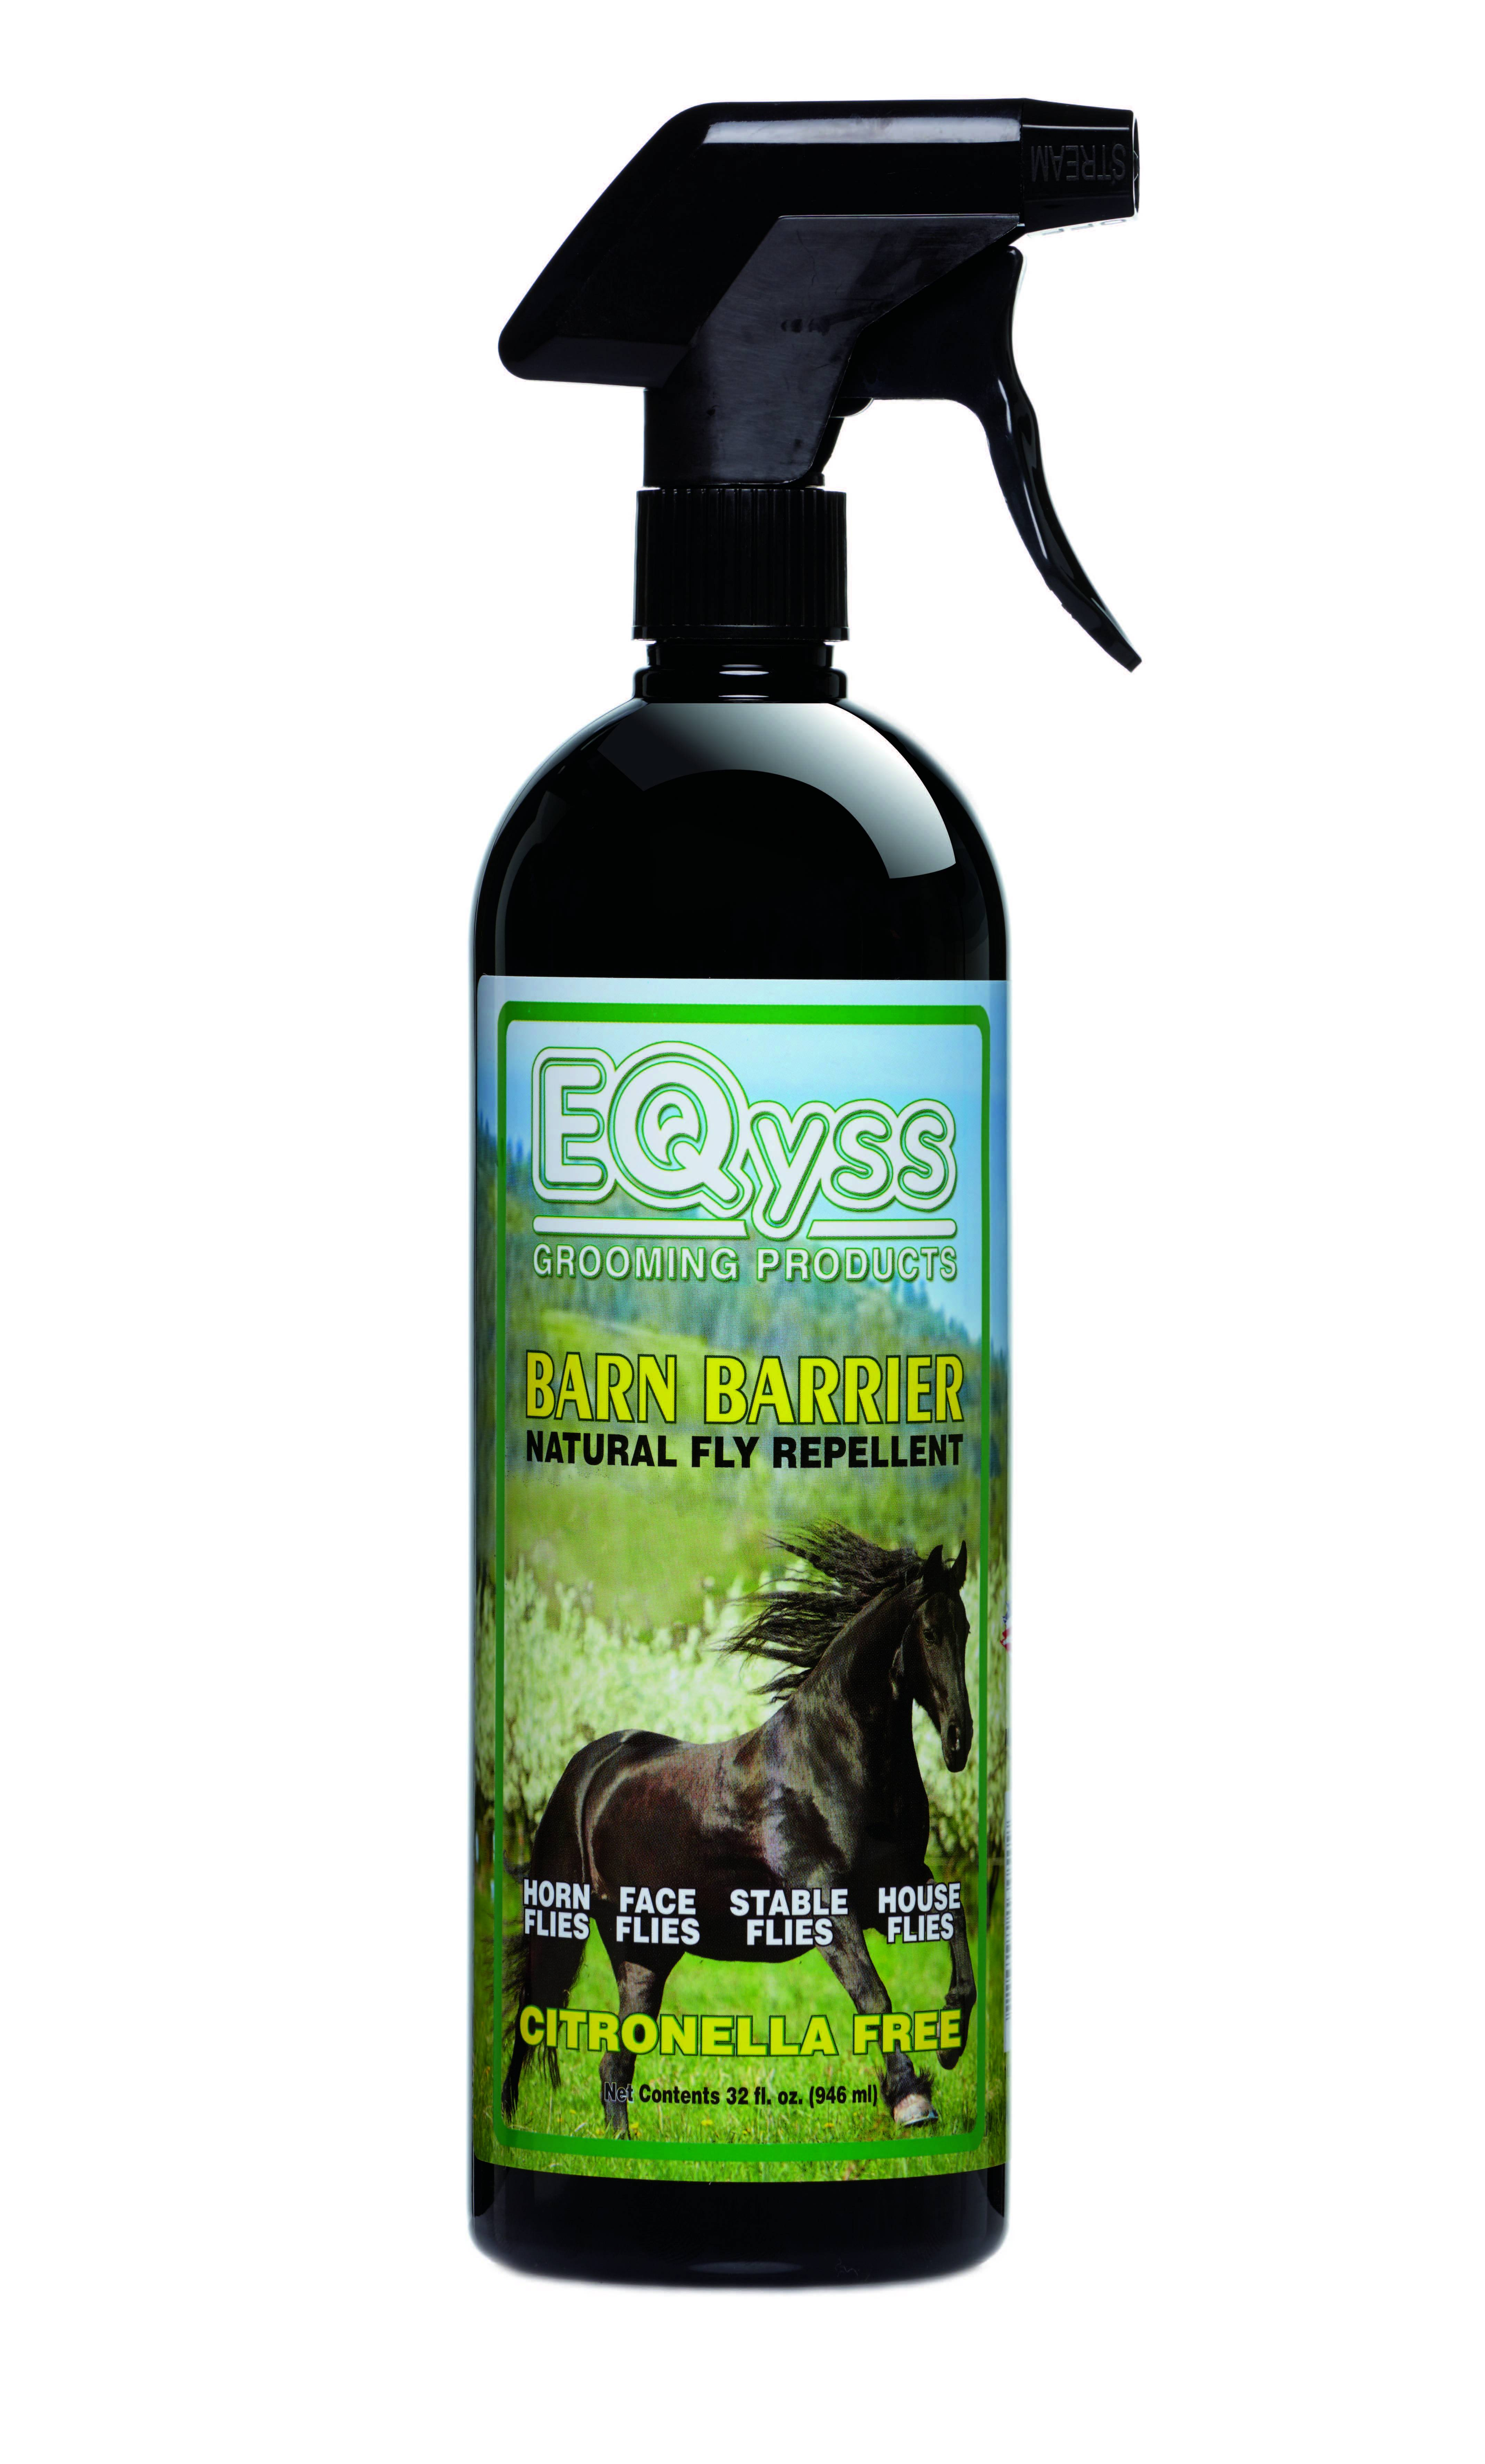 Eqyss Barn Barrier Natural Fly Repellent